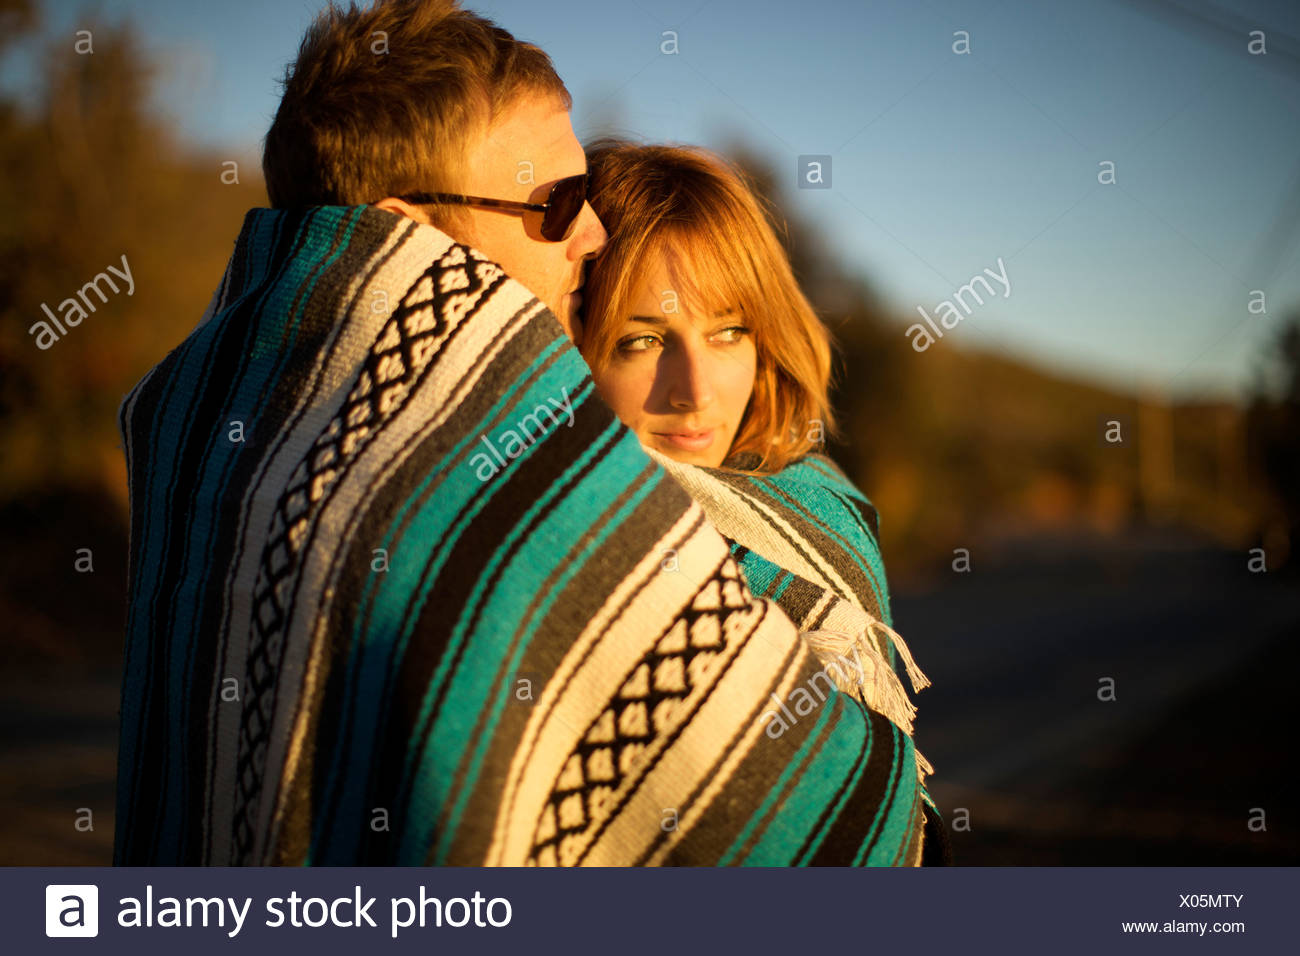 Couple wraps themselves in a blue and white blanket and watch the sunset. Stock Photo